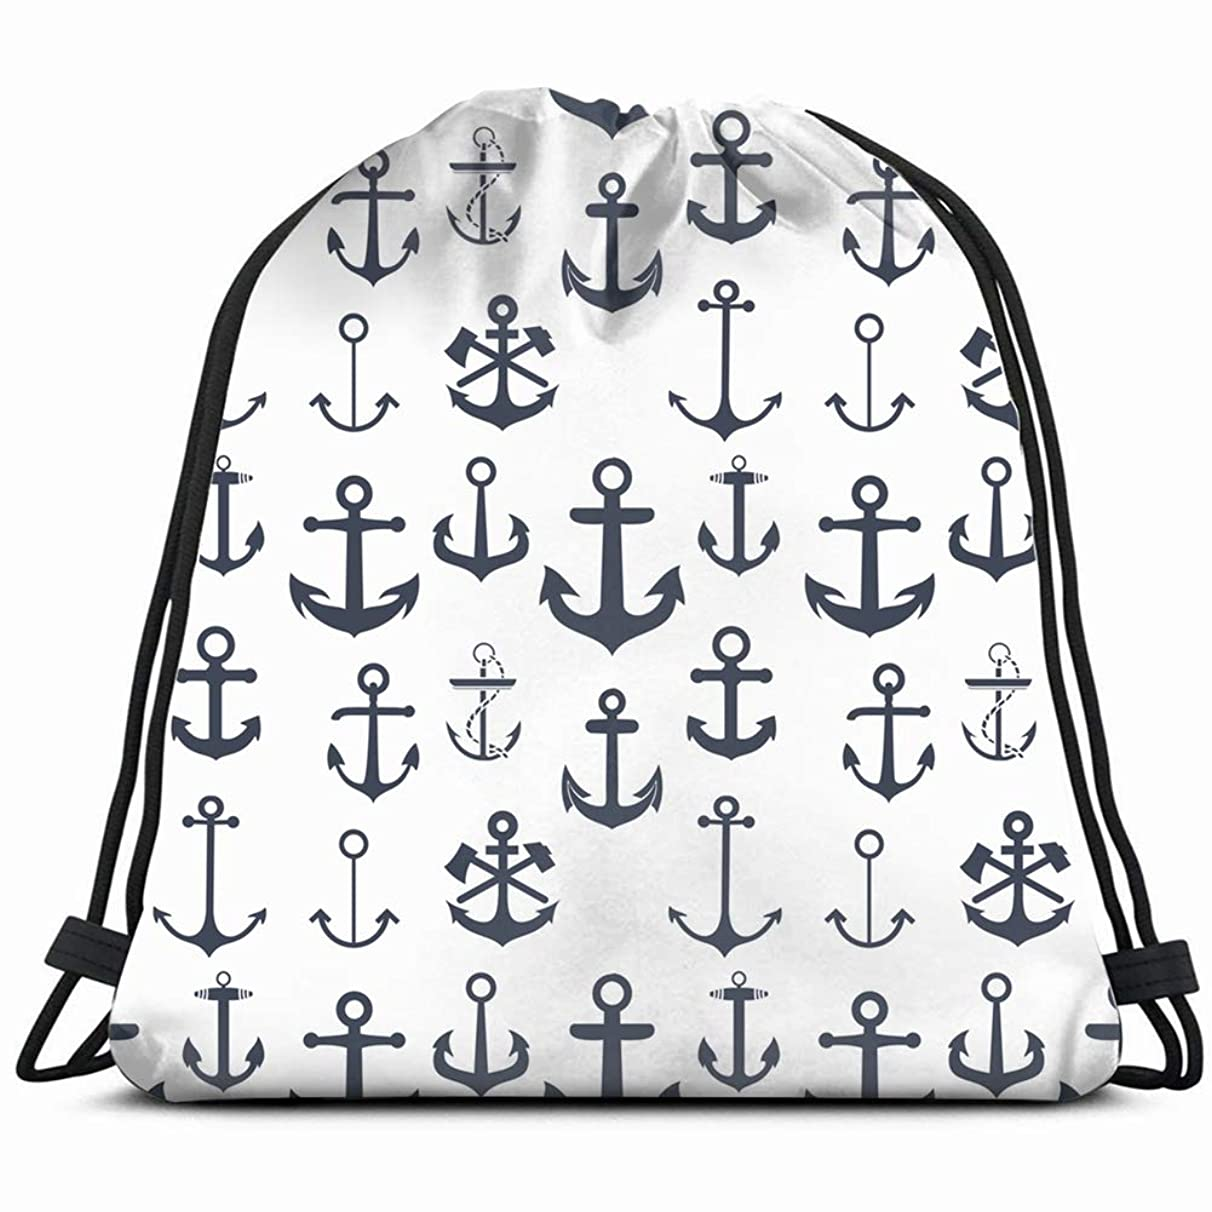 anchors anchor vintage Drawstring Backpack Gym Sack Lightweight Bag Water Resistant Gym Backpack for Women&Men for Sports,Travelling,Hiking,Camping,Shopping Yoga